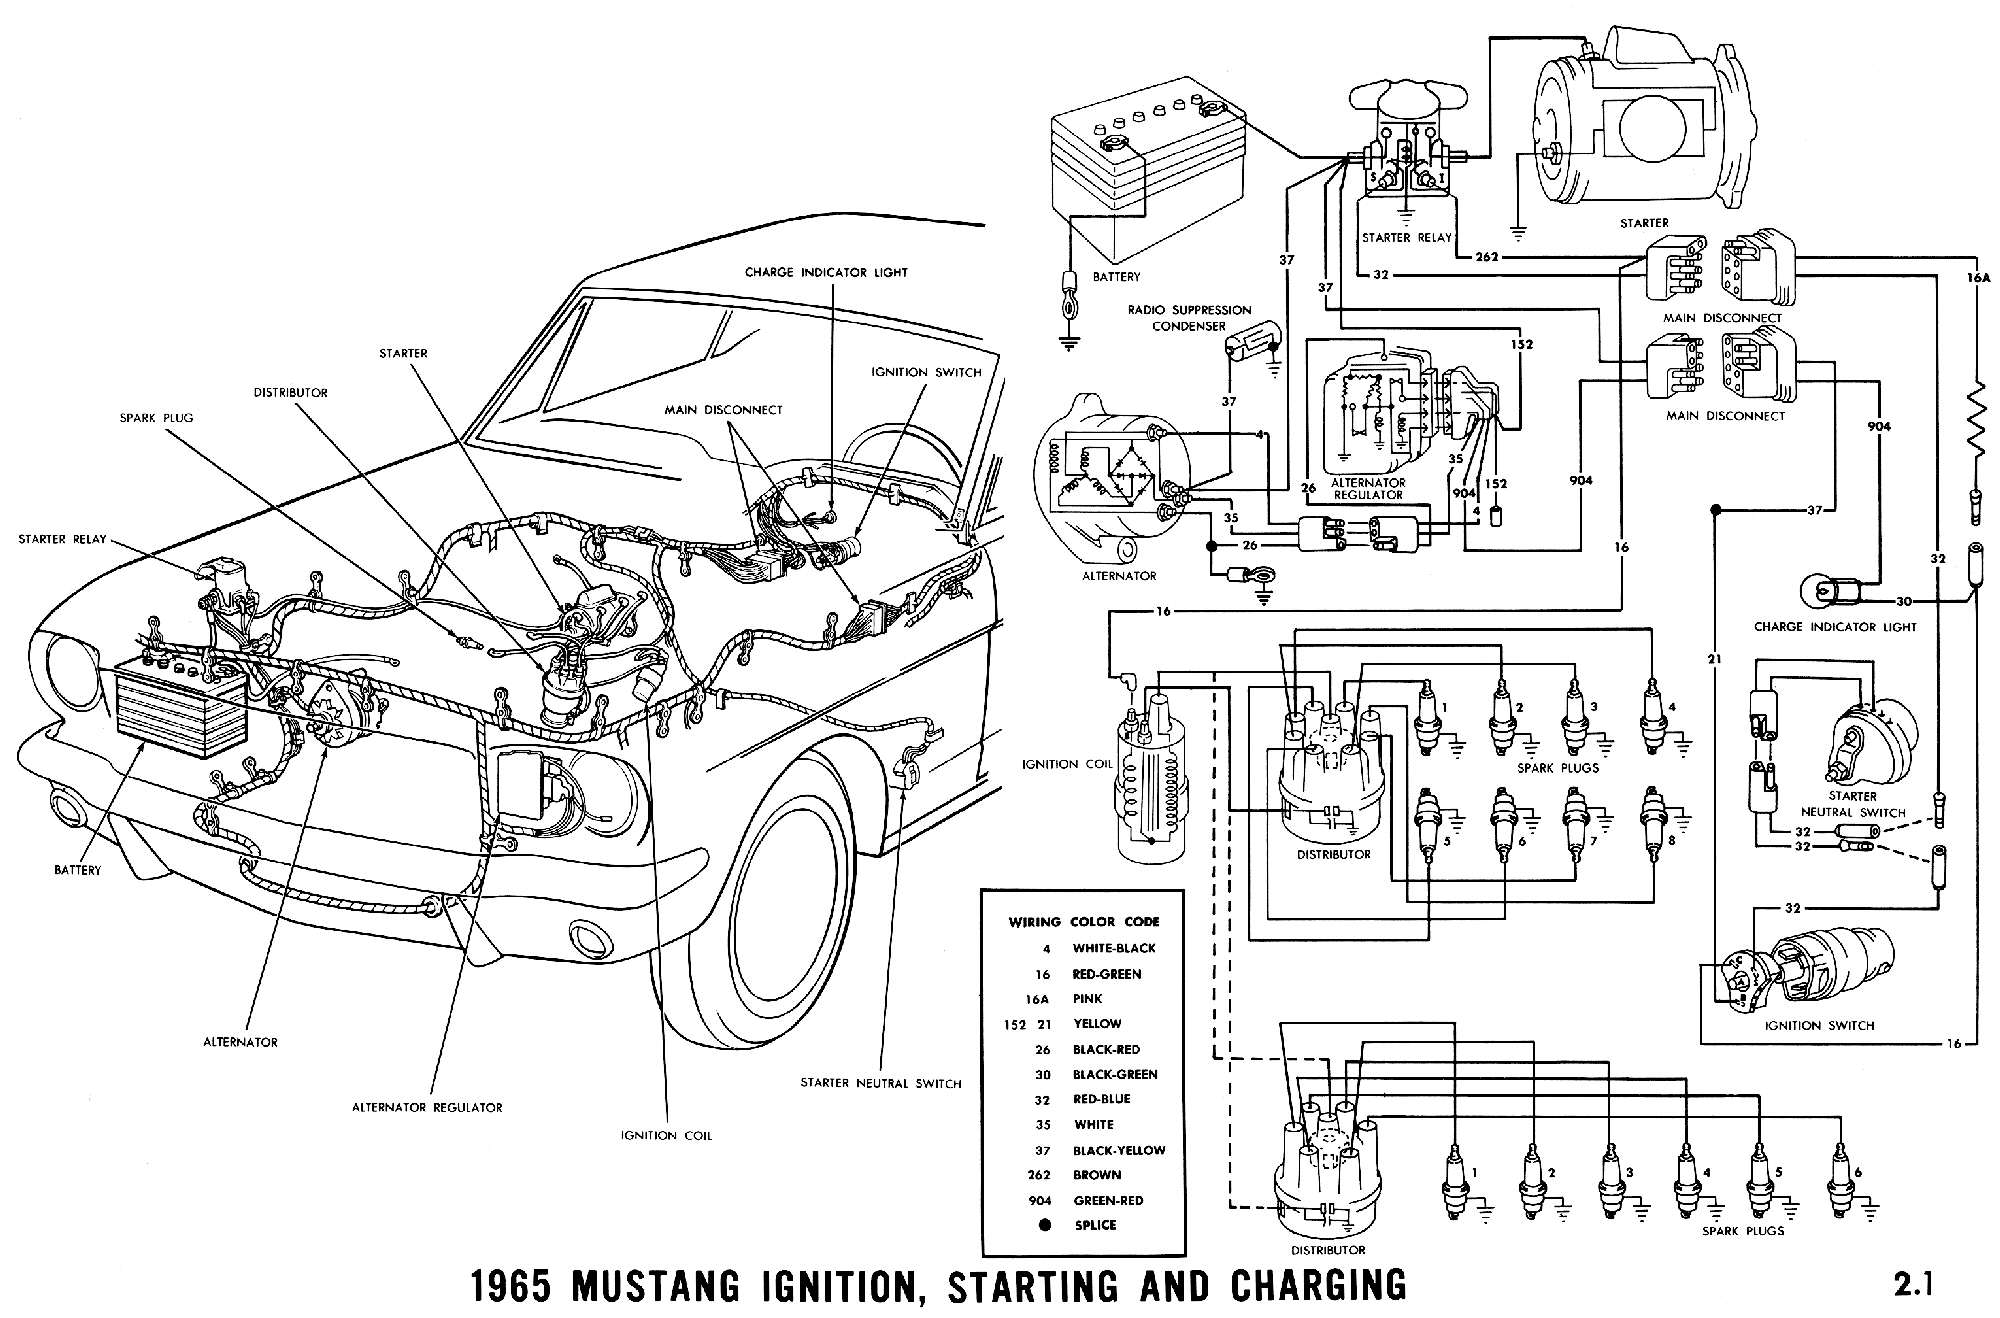 1965 mustang wiring diagrams average joe restoration rh averagejoerestoration com 1965 mustang wiring diagram color code 1965 mustang wiring diagram free download